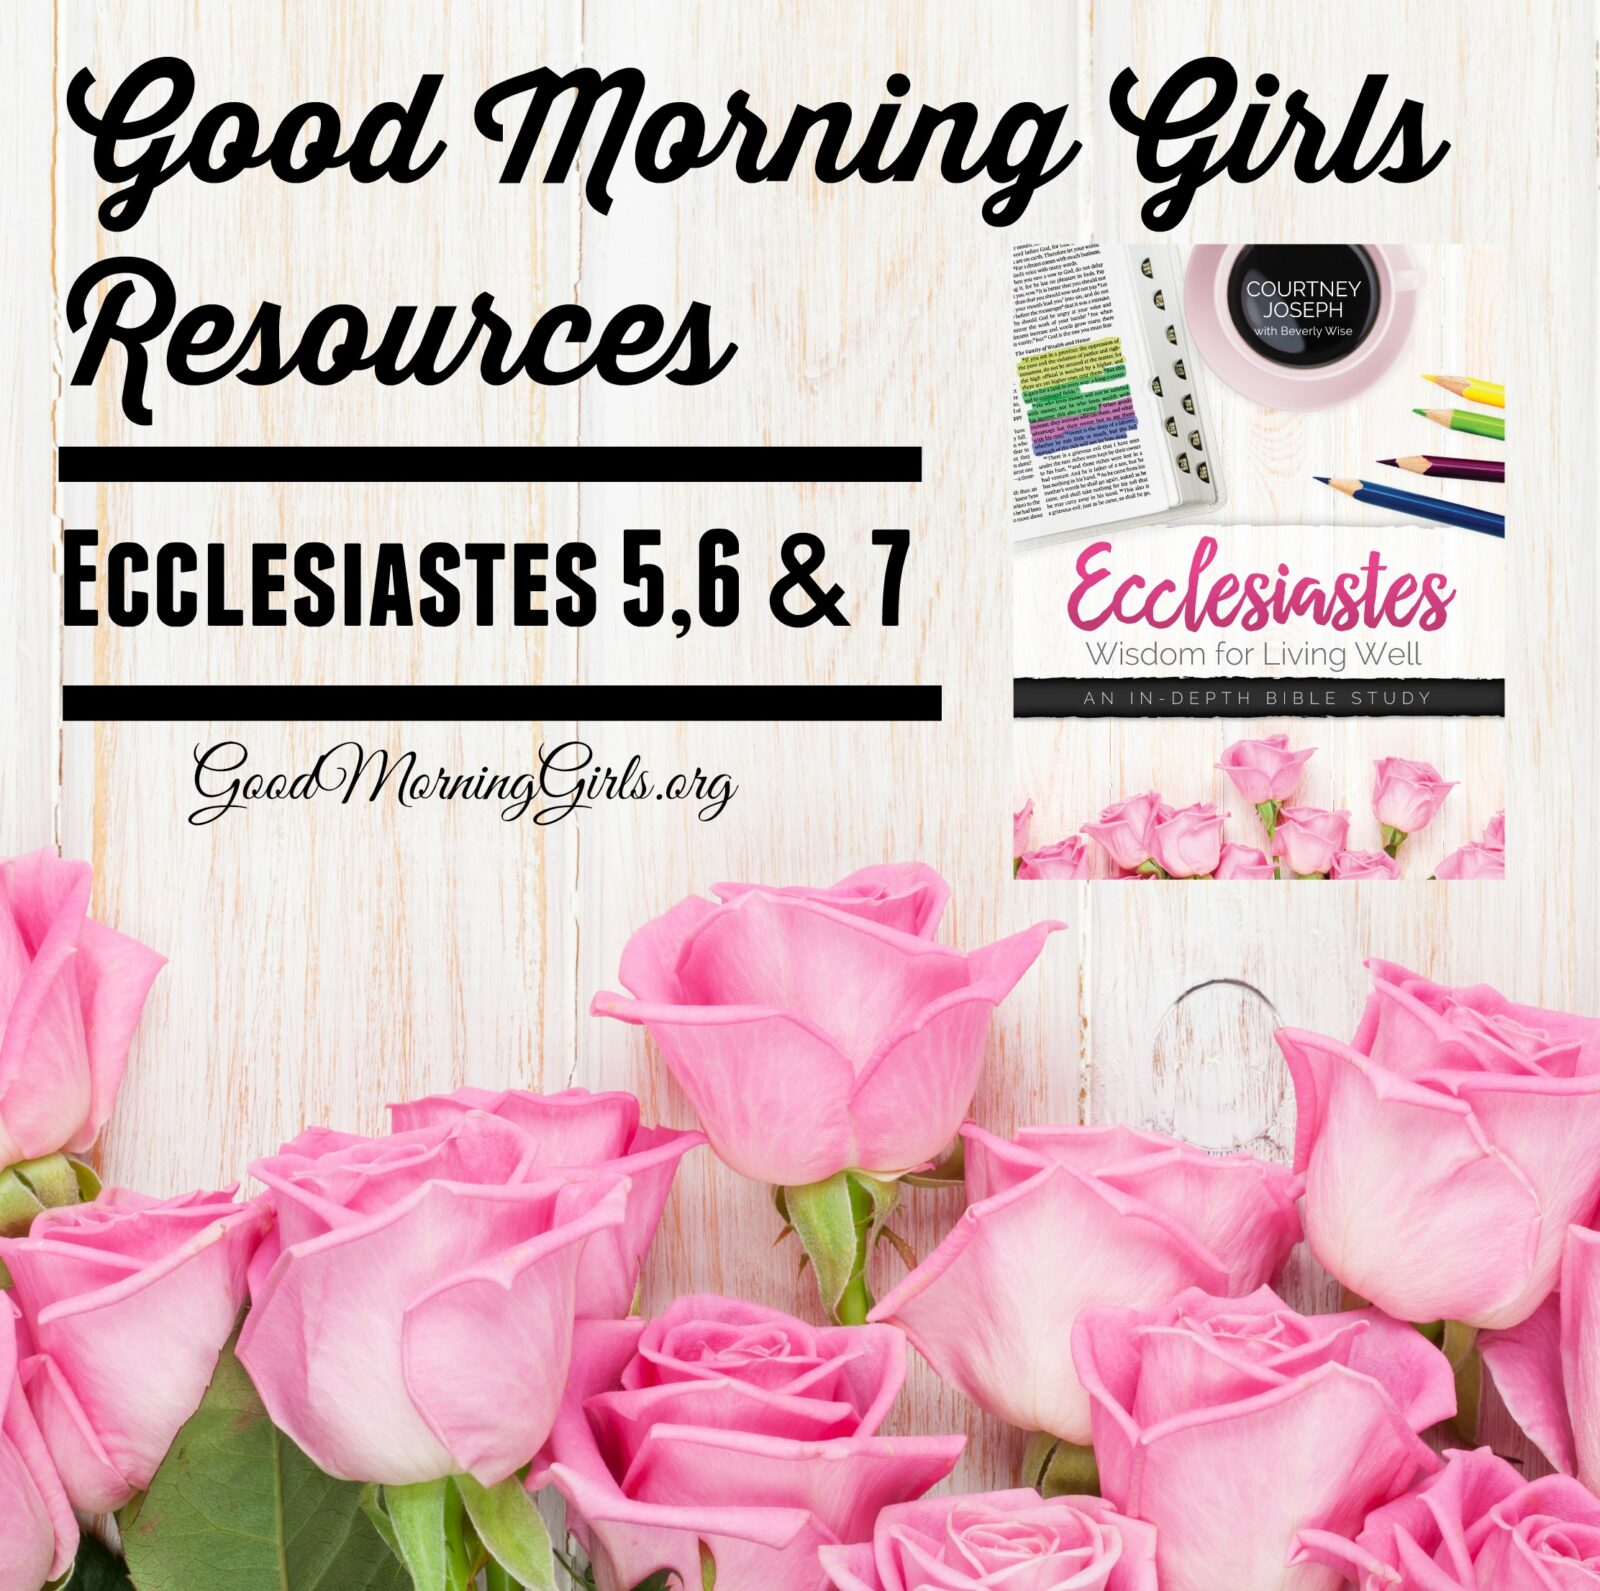 Good Morning Girls Resources {Ecclesiastes 5,6, & 7} - Women Living Well